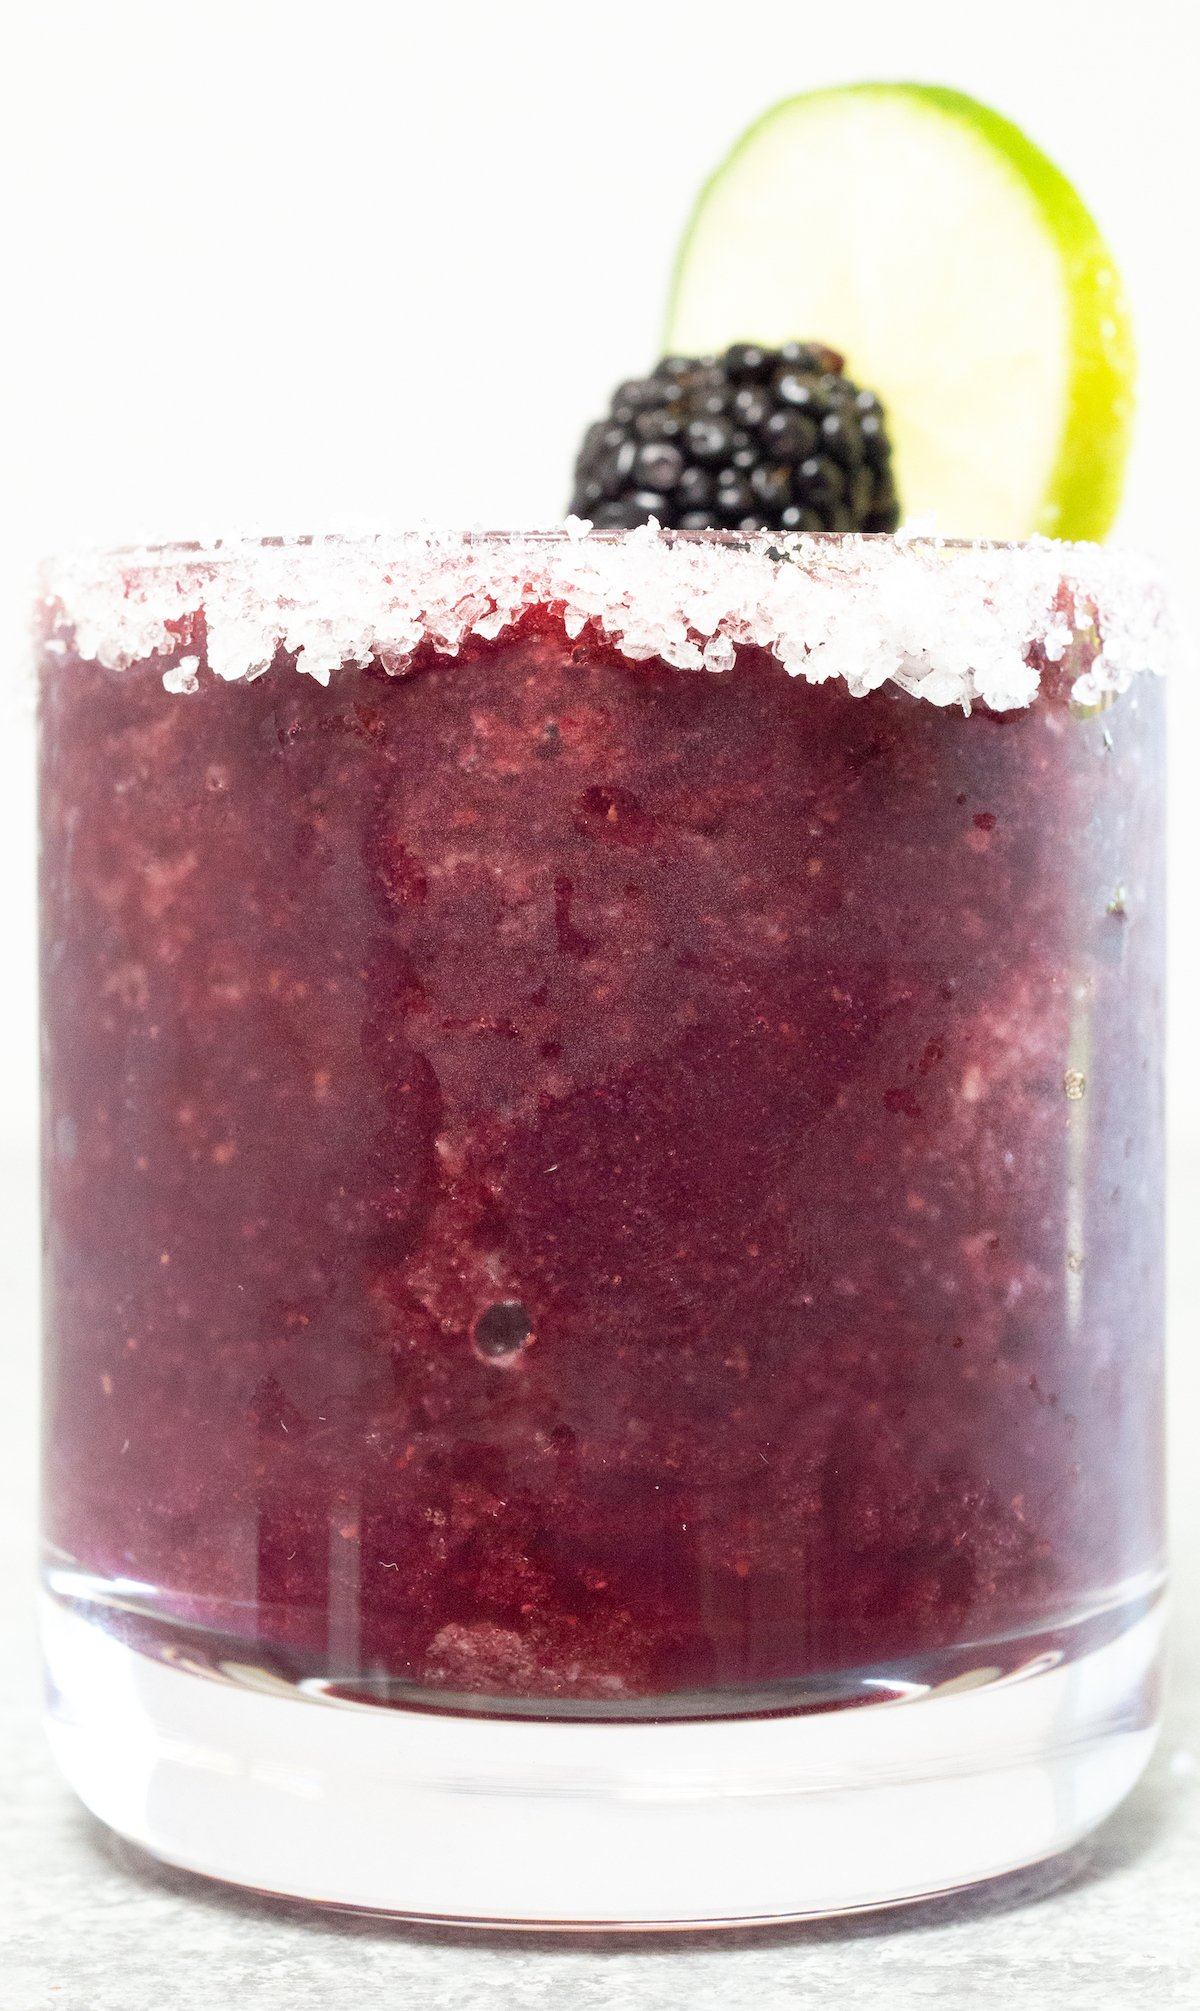 A glass filled with a purple blackberry margarita sits on a white background.